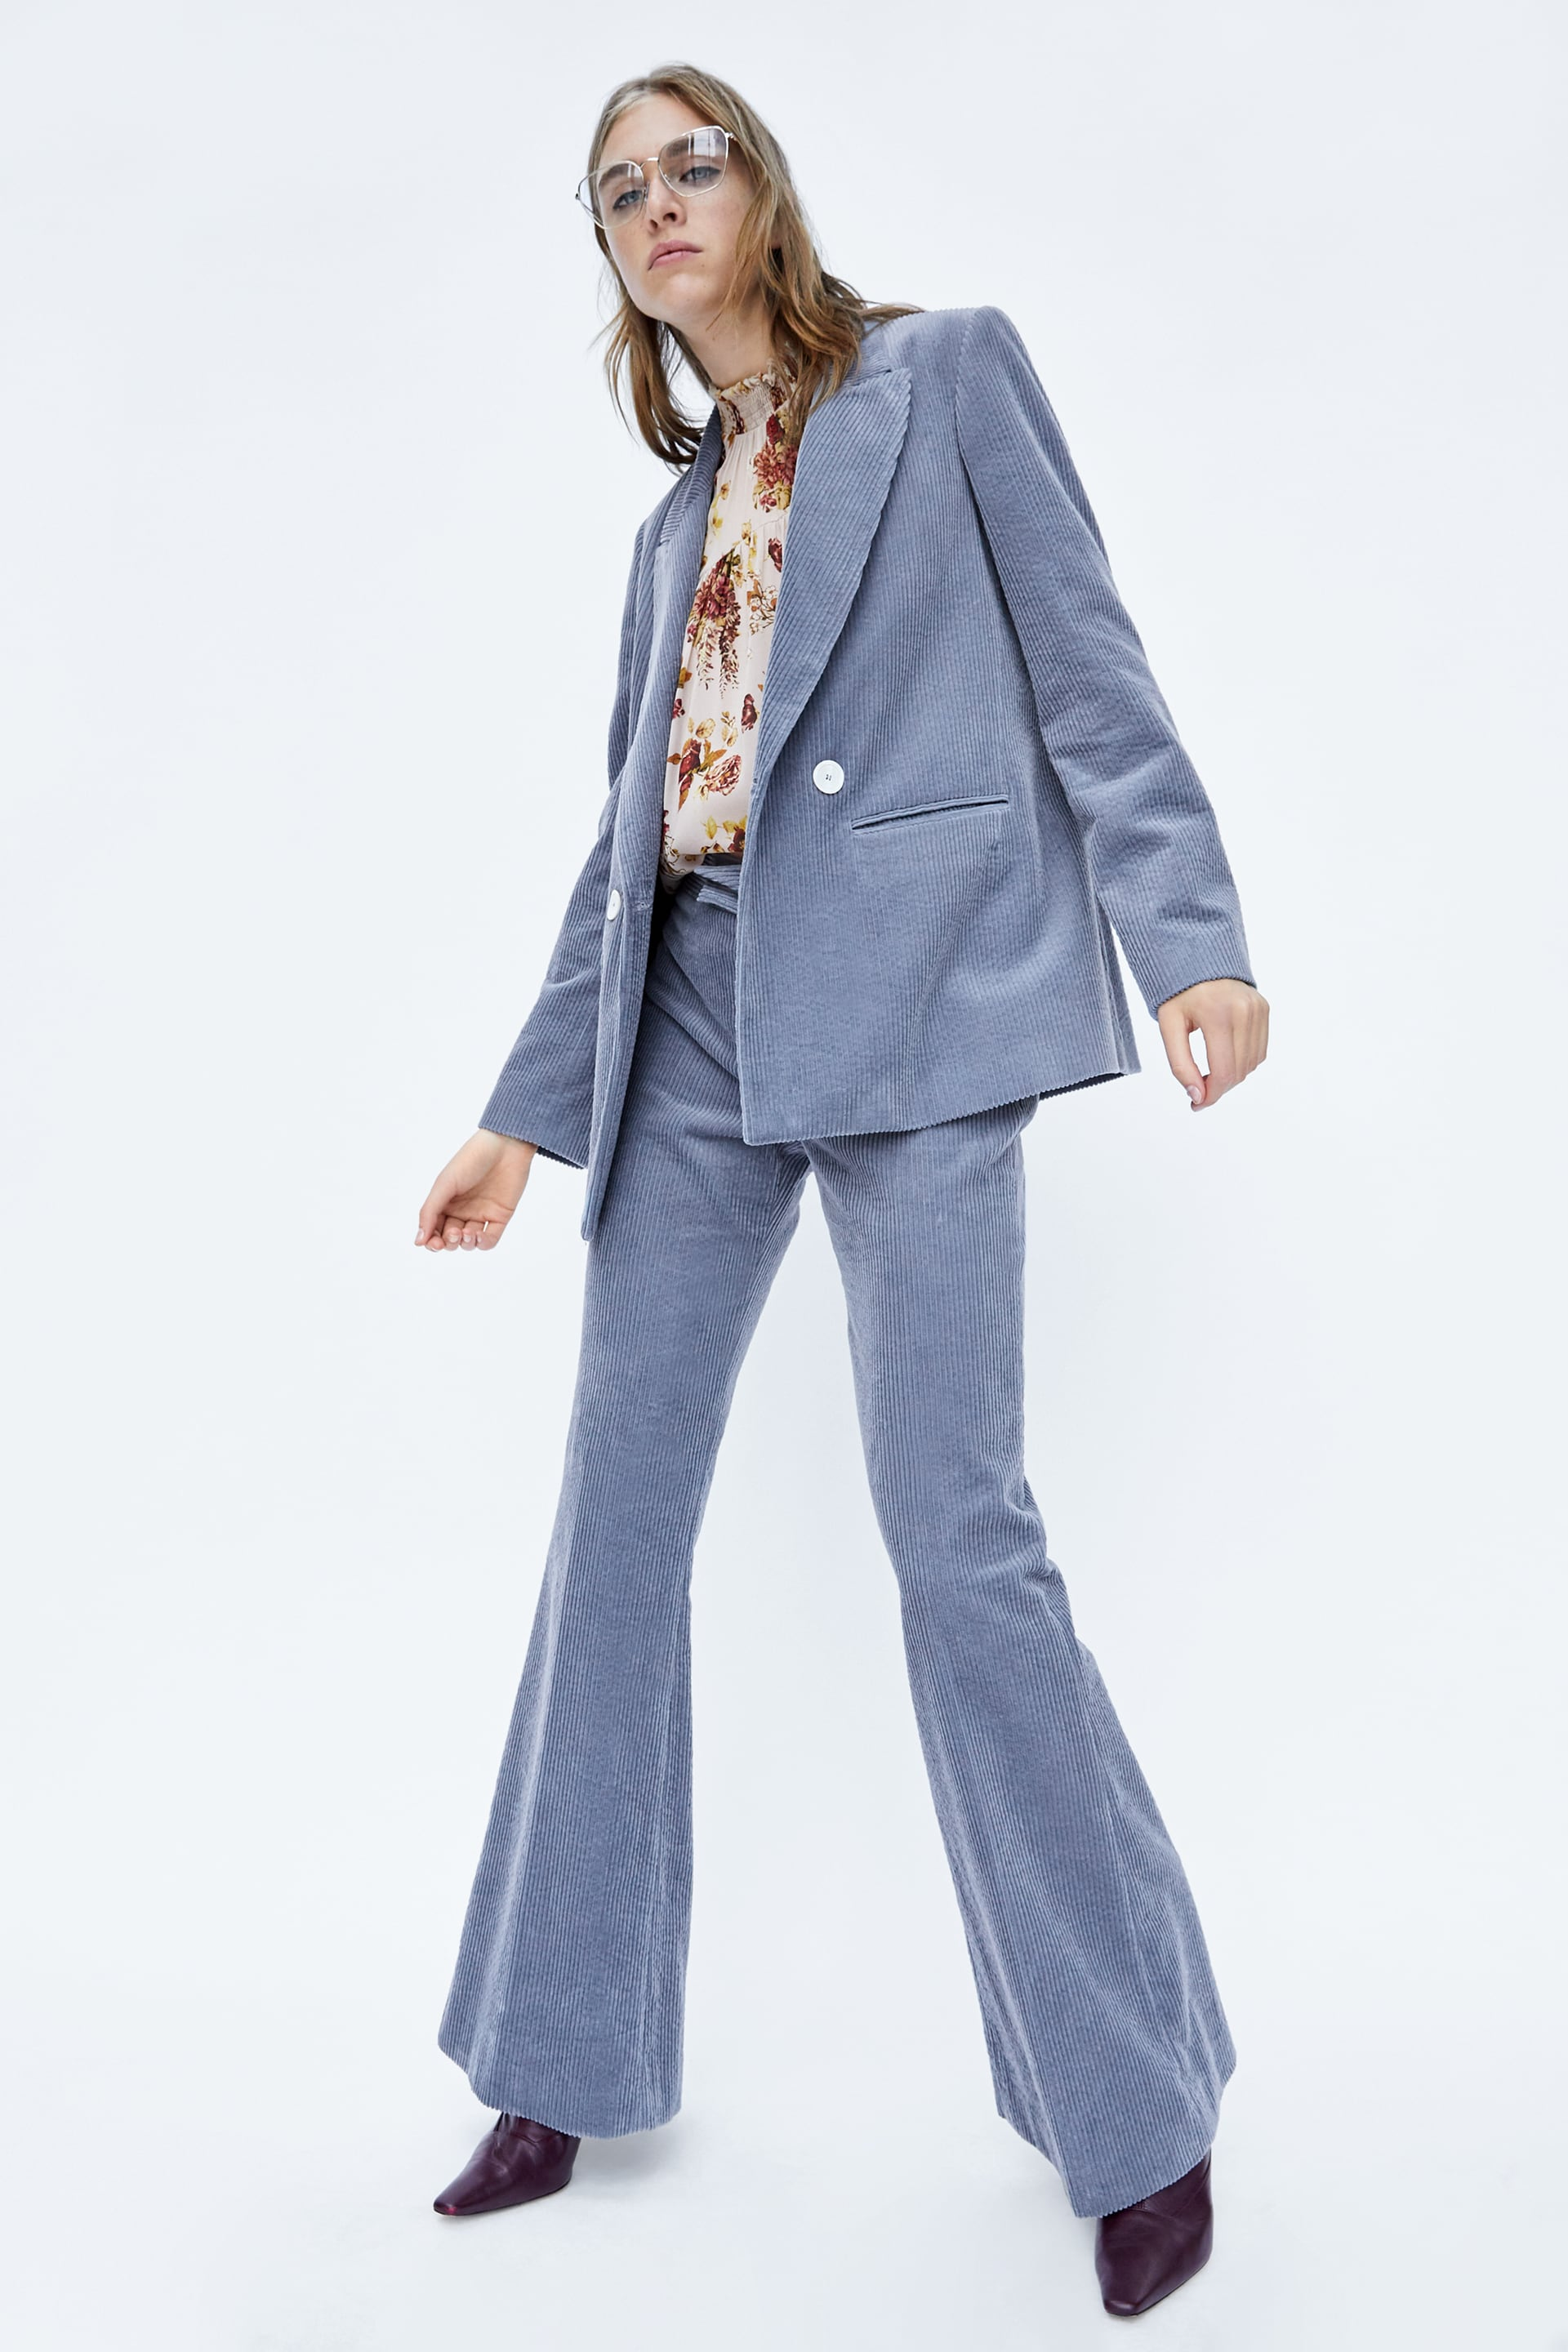 18d33020d067e Zara's New Fall Arrivals Are A Blast From The Past